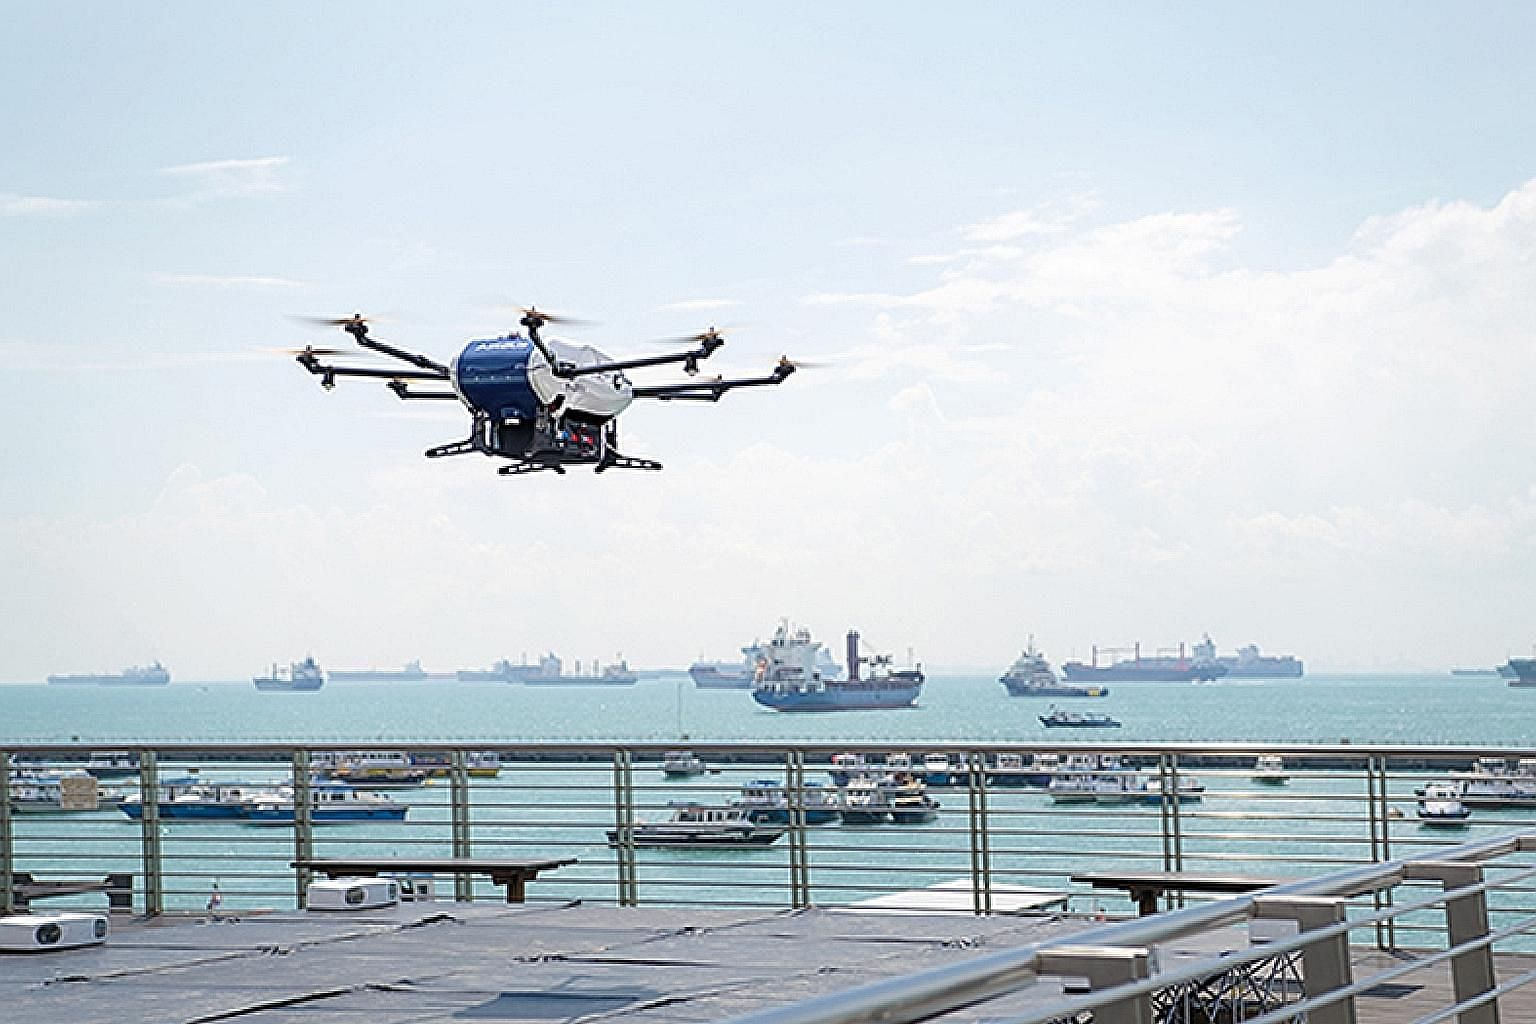 A drone test being conducted off the Marina South Pier. The drone system is six times faster than delivering by boat and lowers costs by up to 90 per cent, cuts carbon emissions and reduces the risk of maritime accidents.